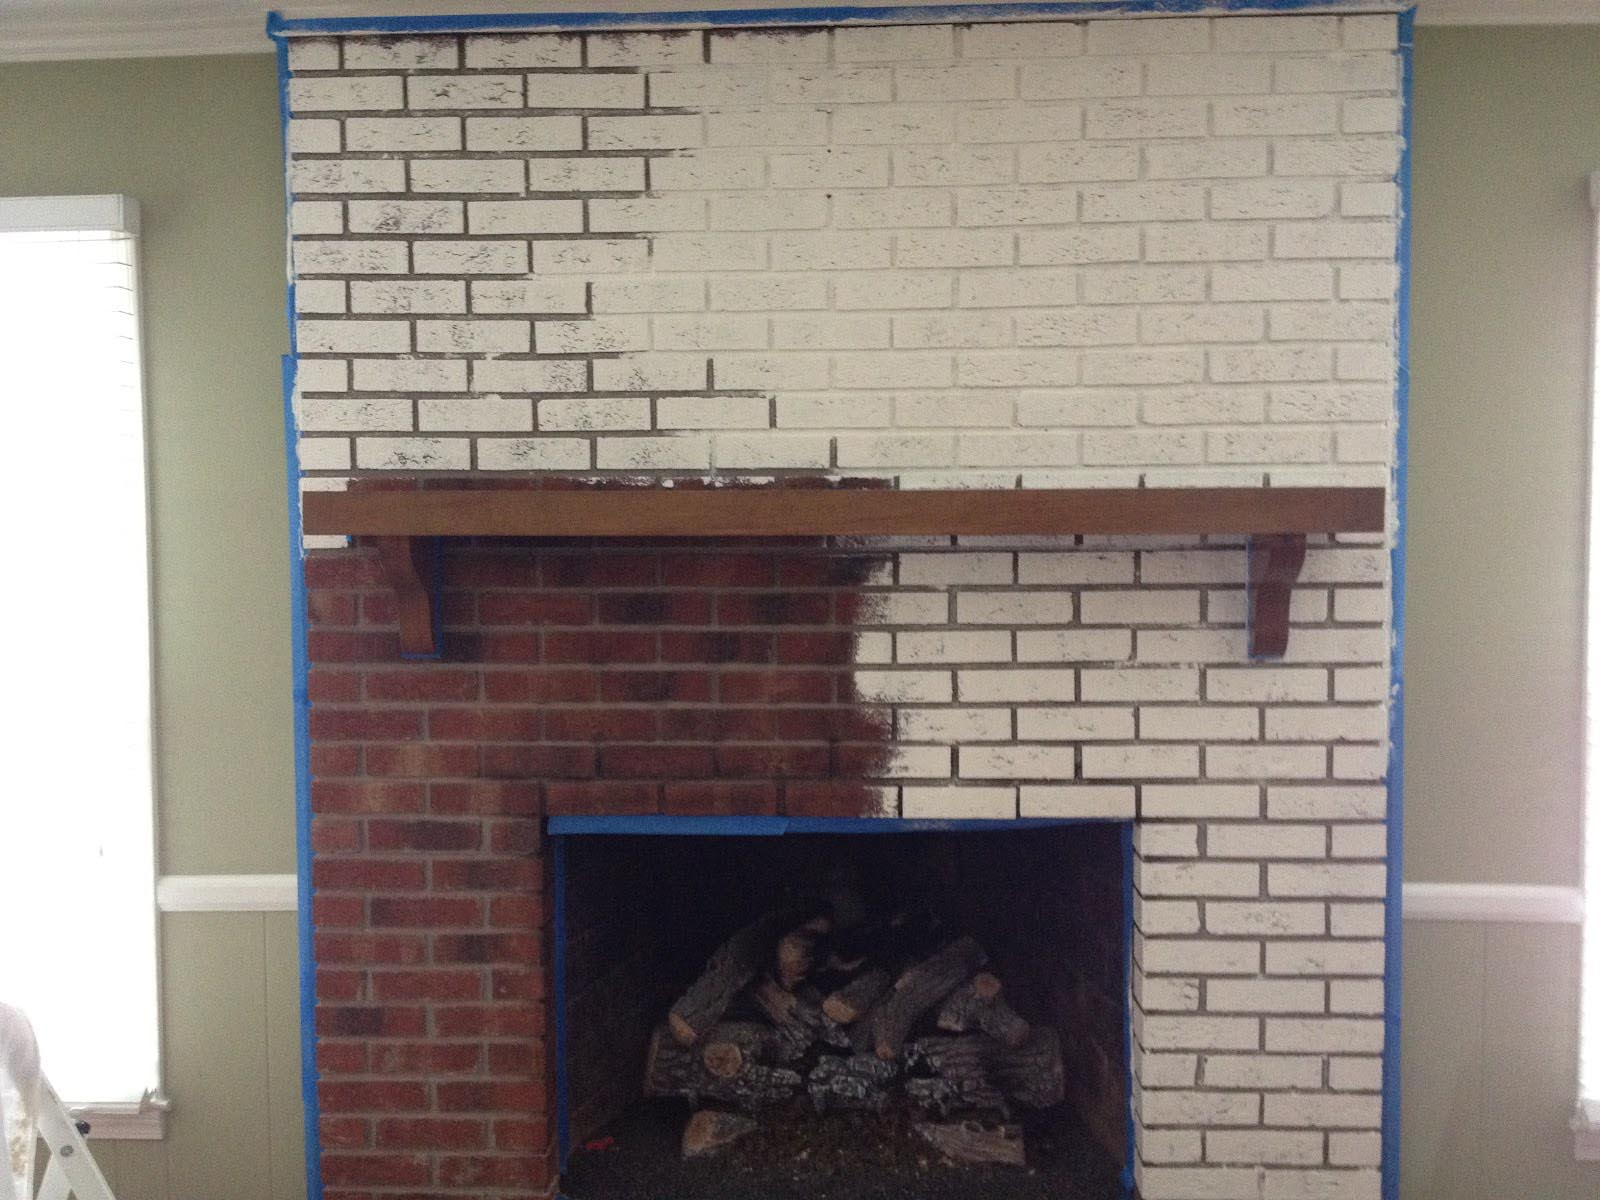 Fireplace brick paint colors fireplace designs - Painting over brick exterior photos ...